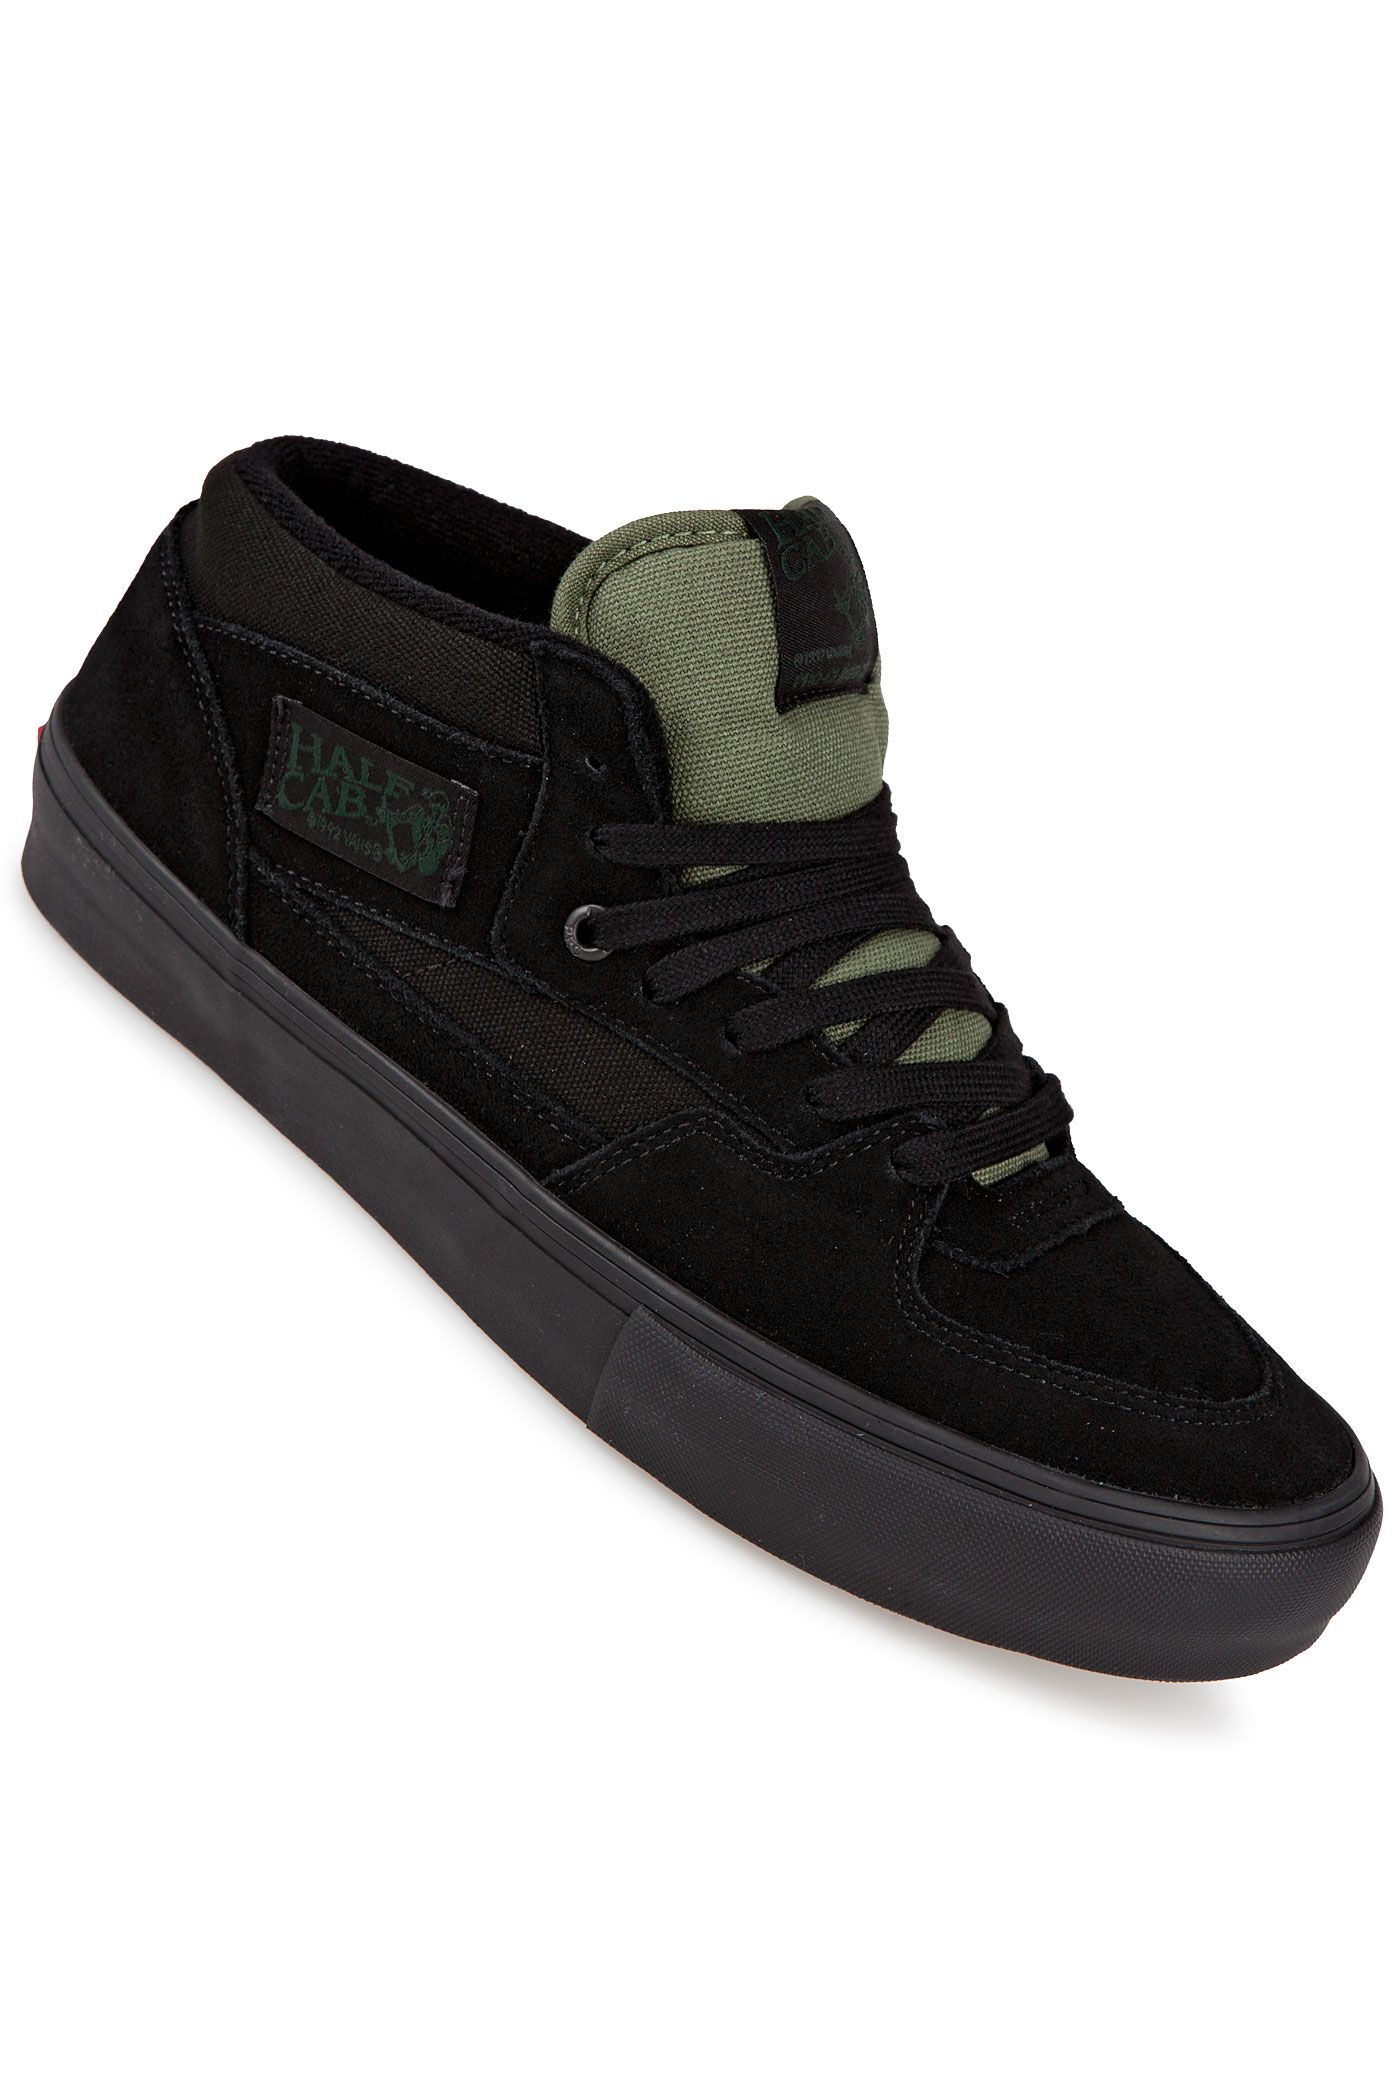 vans half cab black green